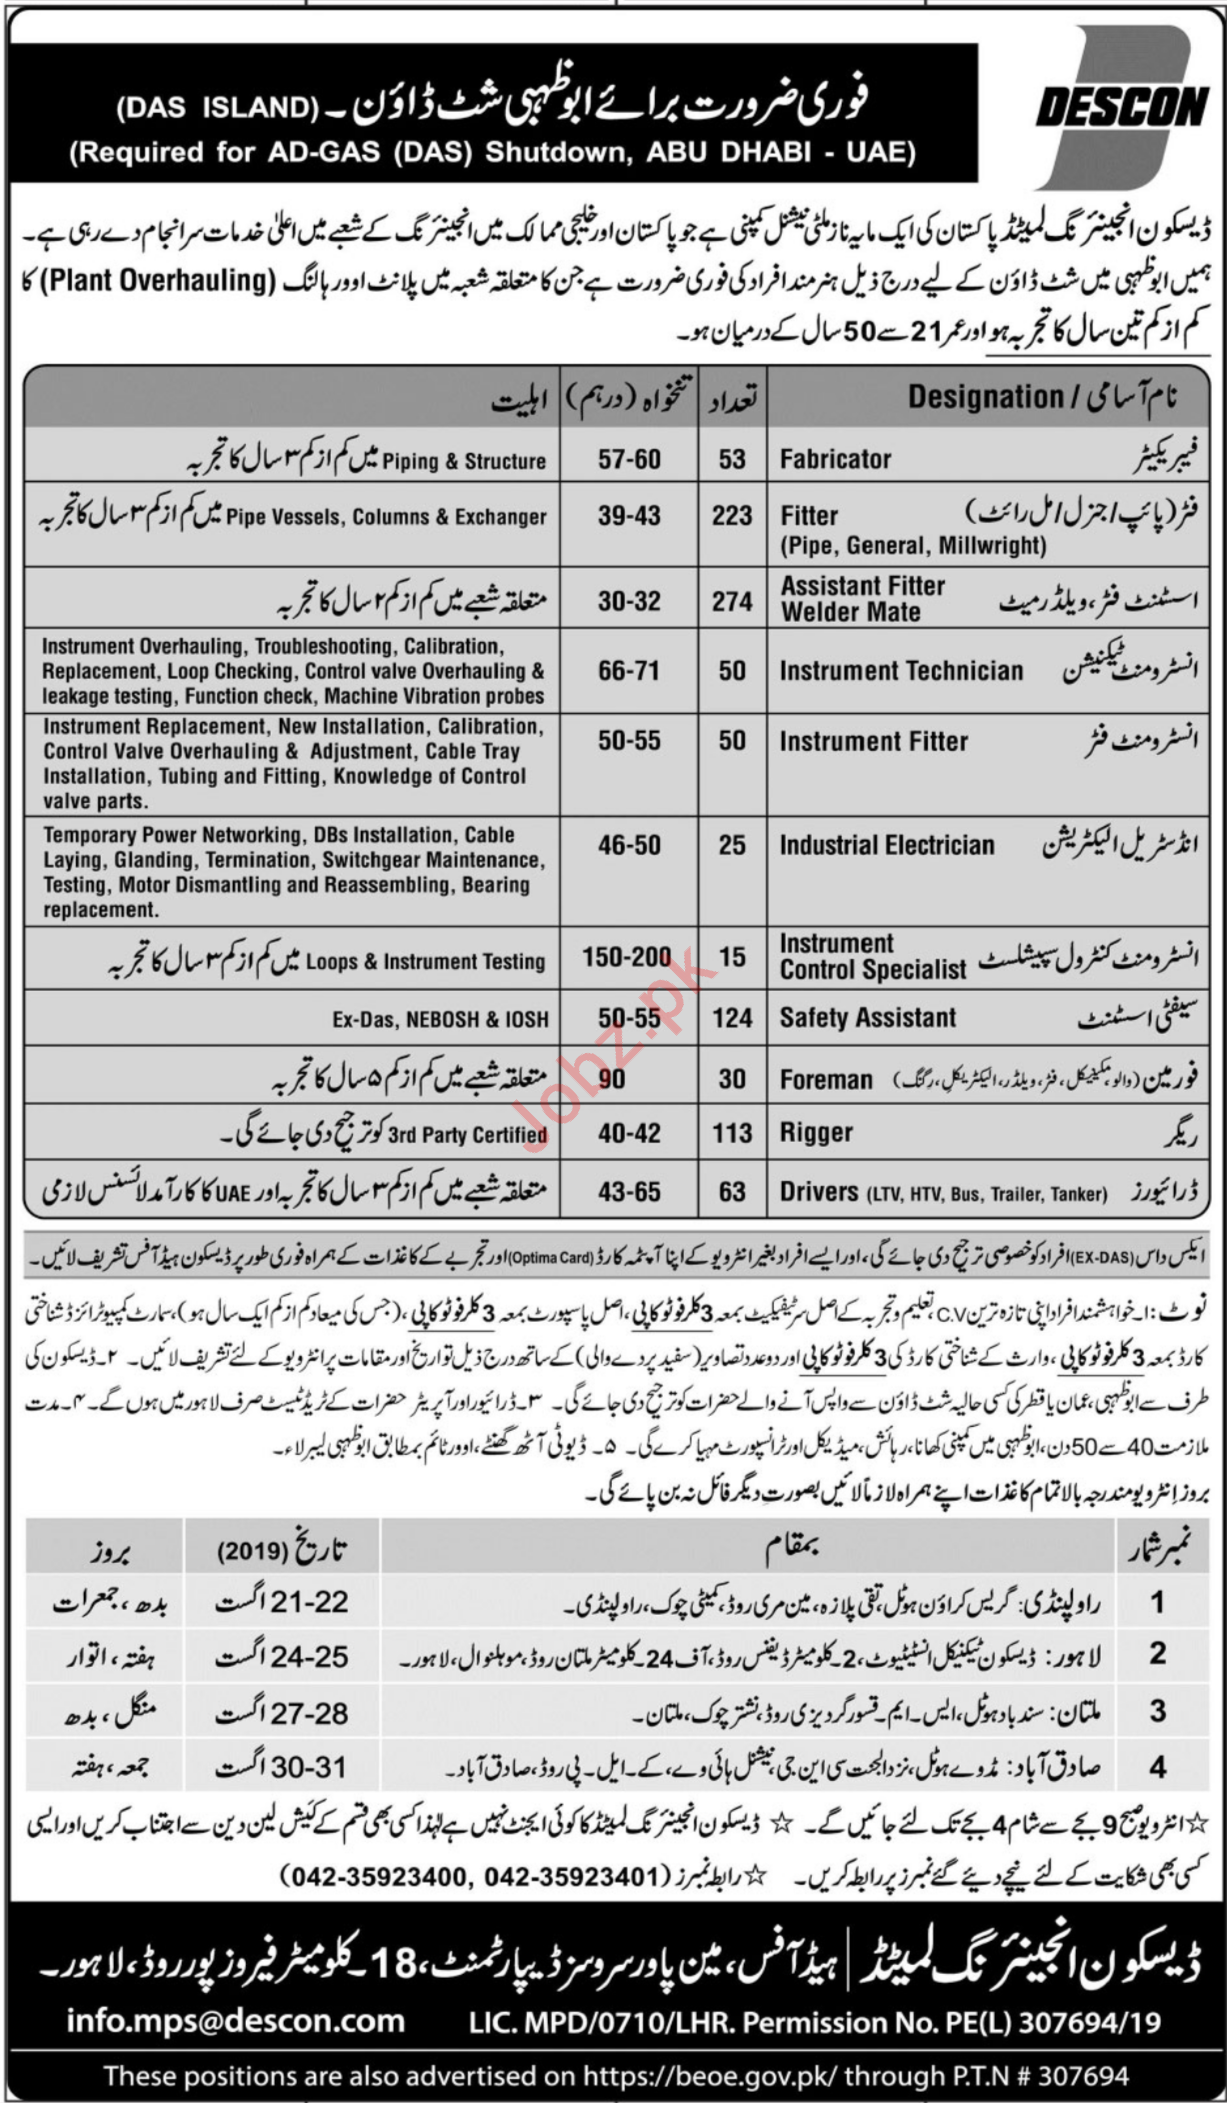 Industrial Electrician Safety Foreman Jobs in Dubai